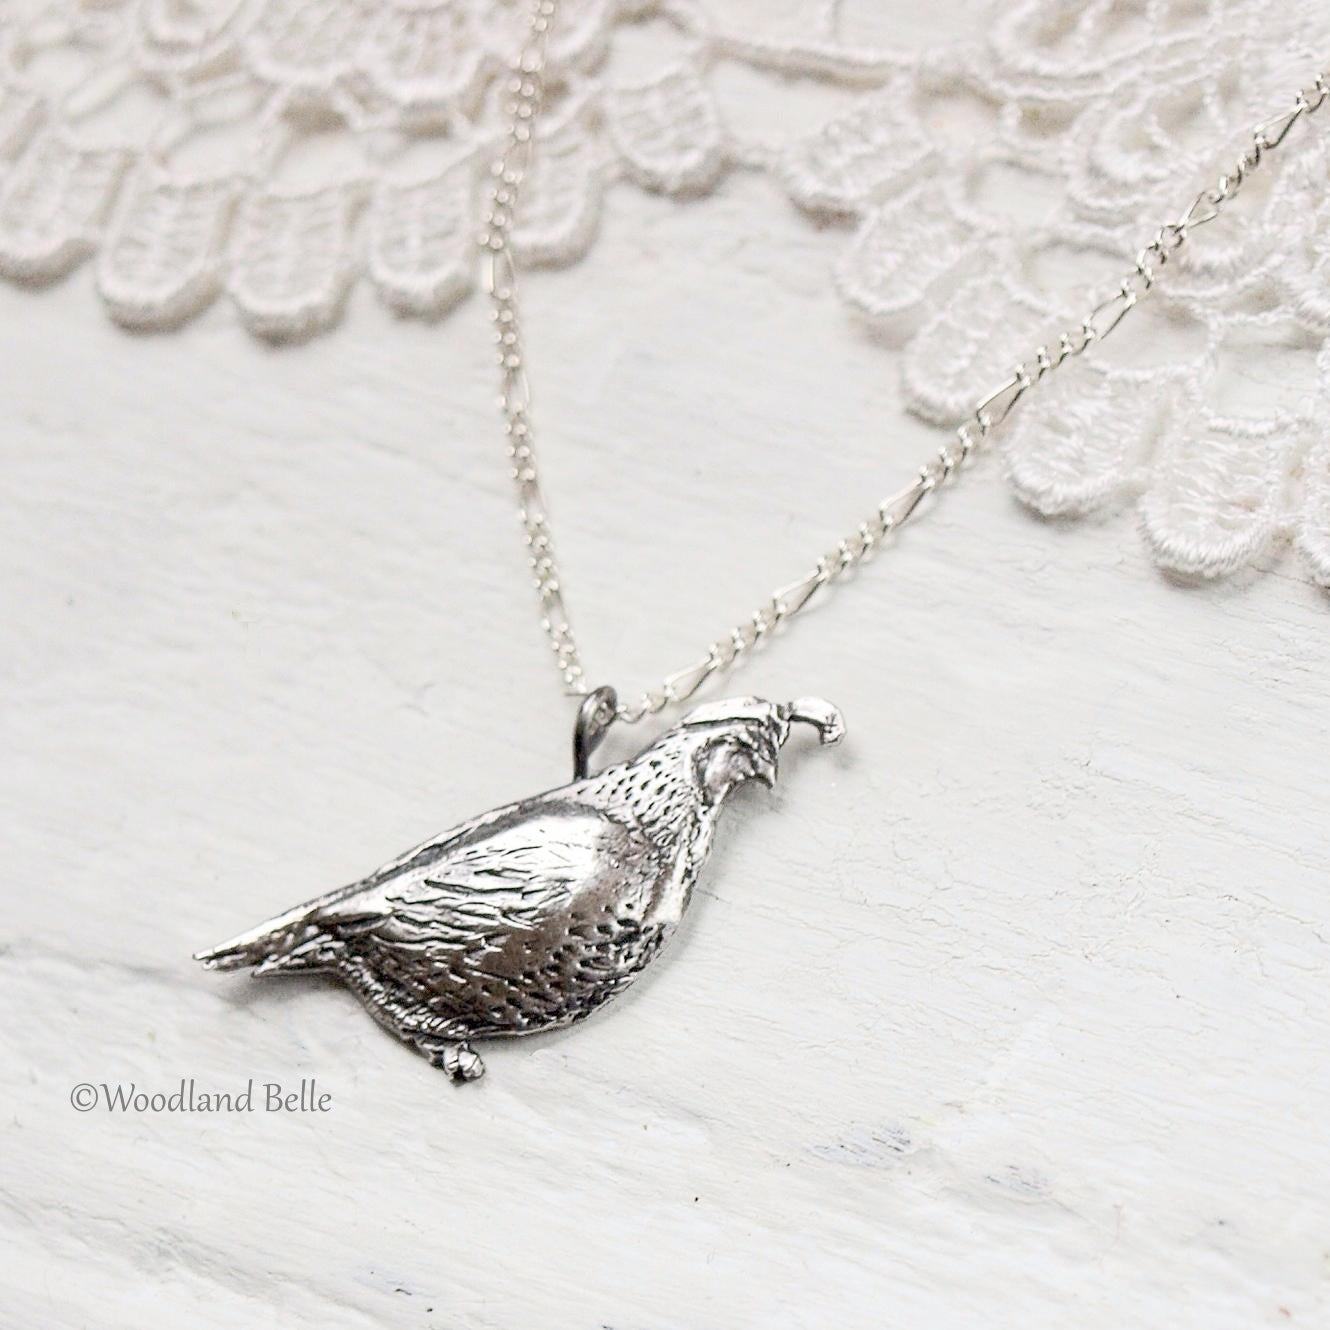 Quail Necklace - Sterling Silver California Quail Bird Pendant - Bird Lover Gift for Her, by Woodland Belle